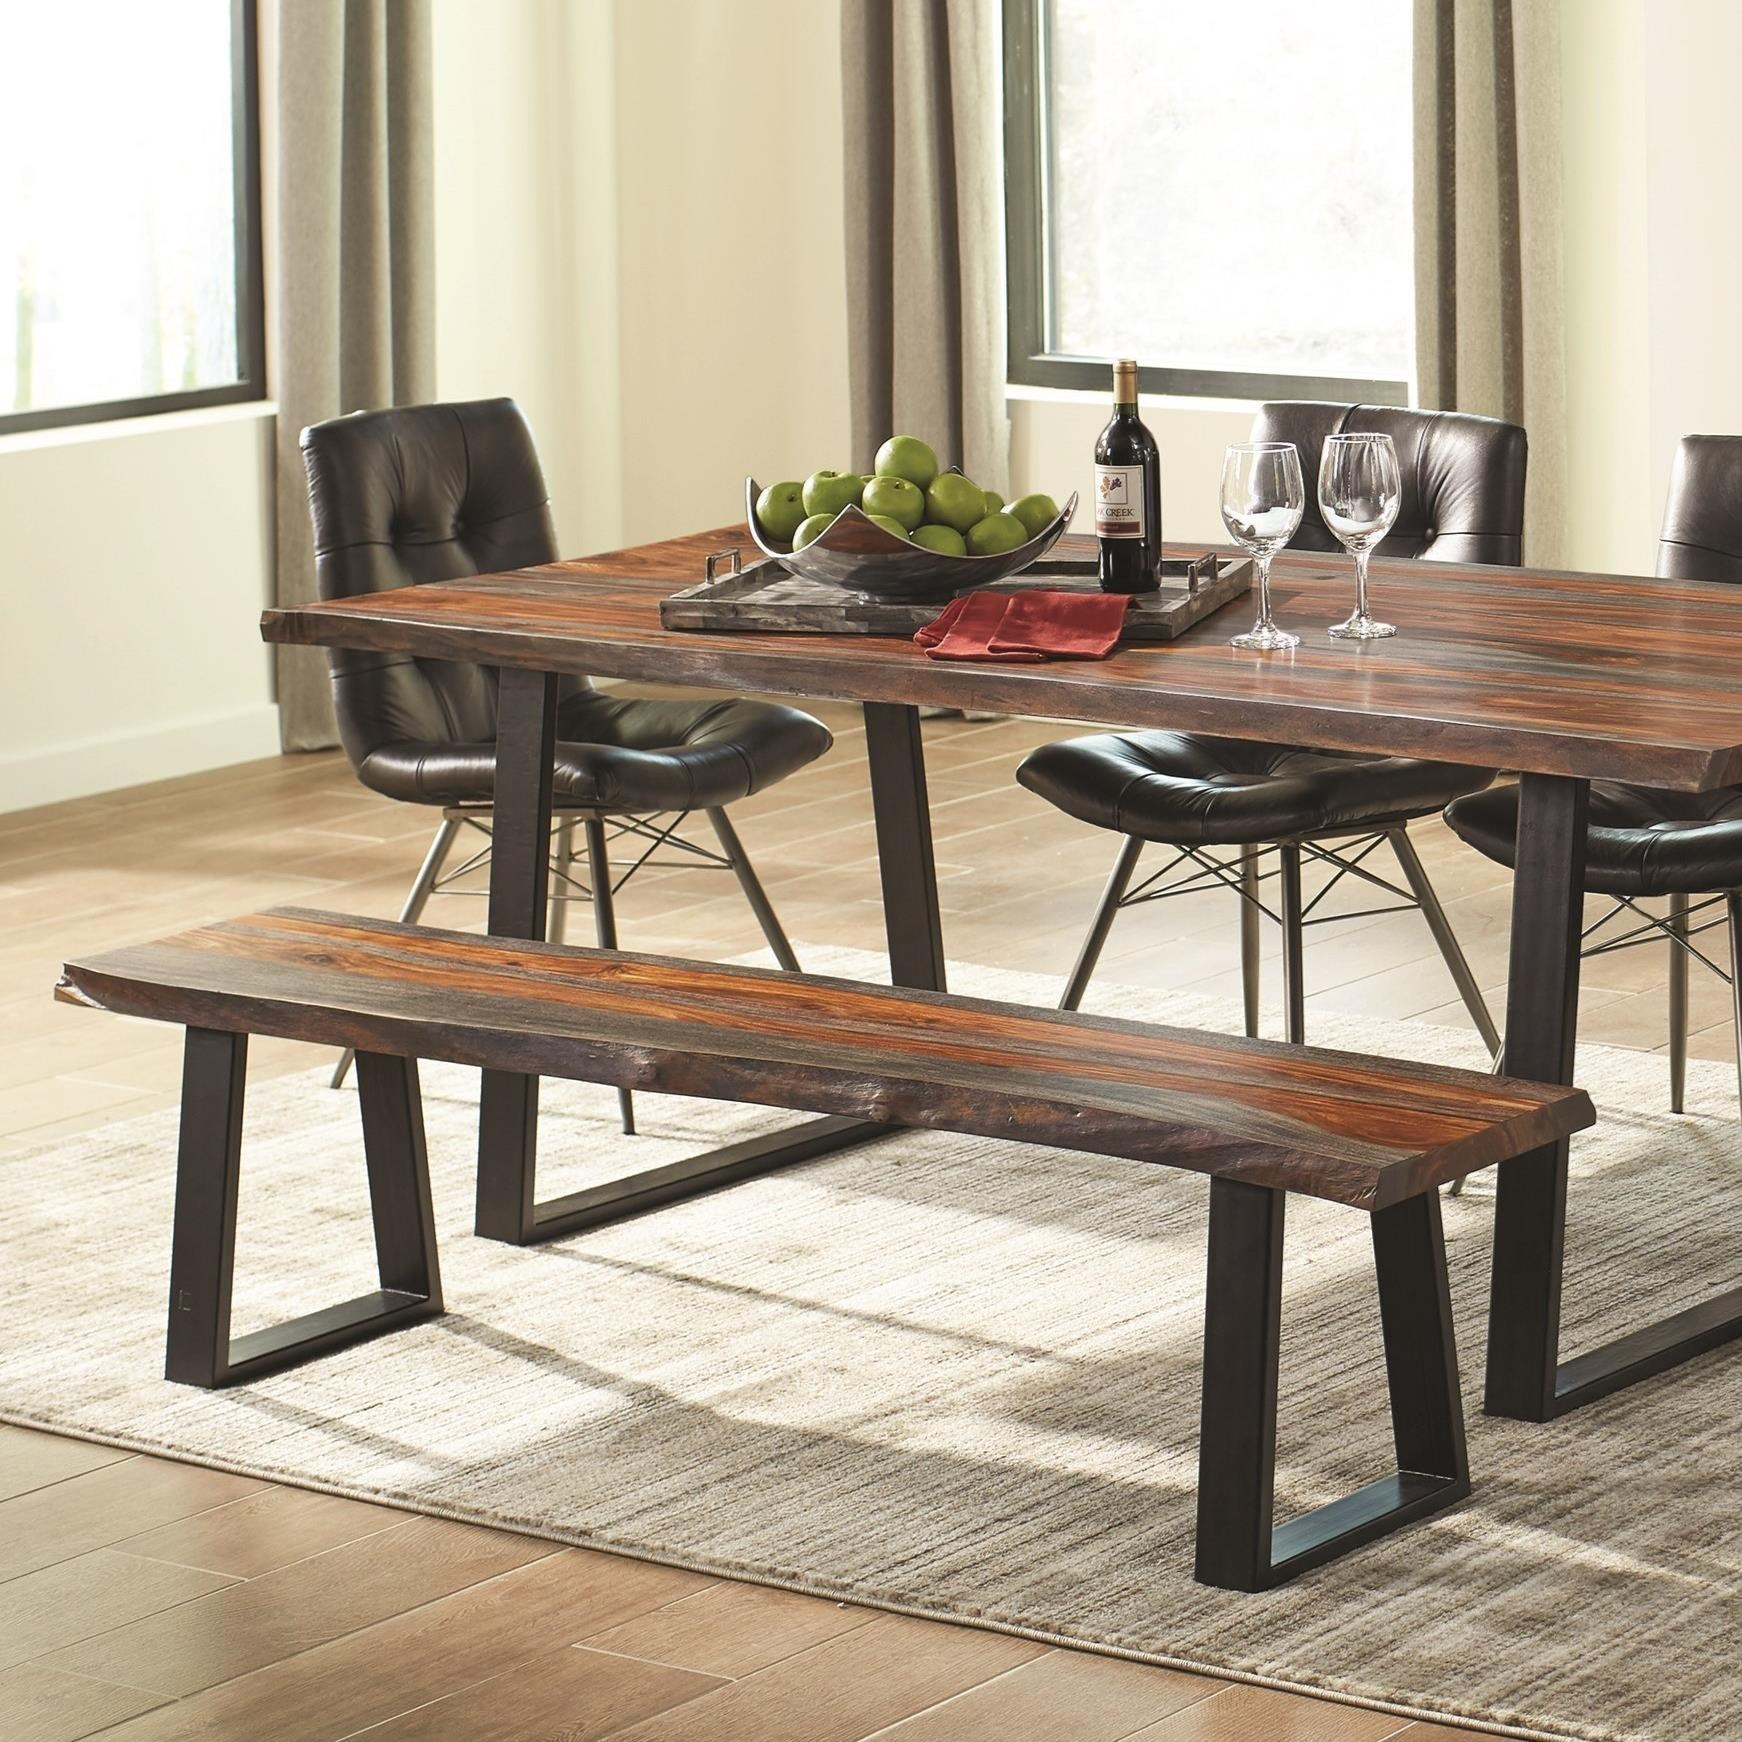 Scott Living Jamestown Rustic Live Edge Dining Bench